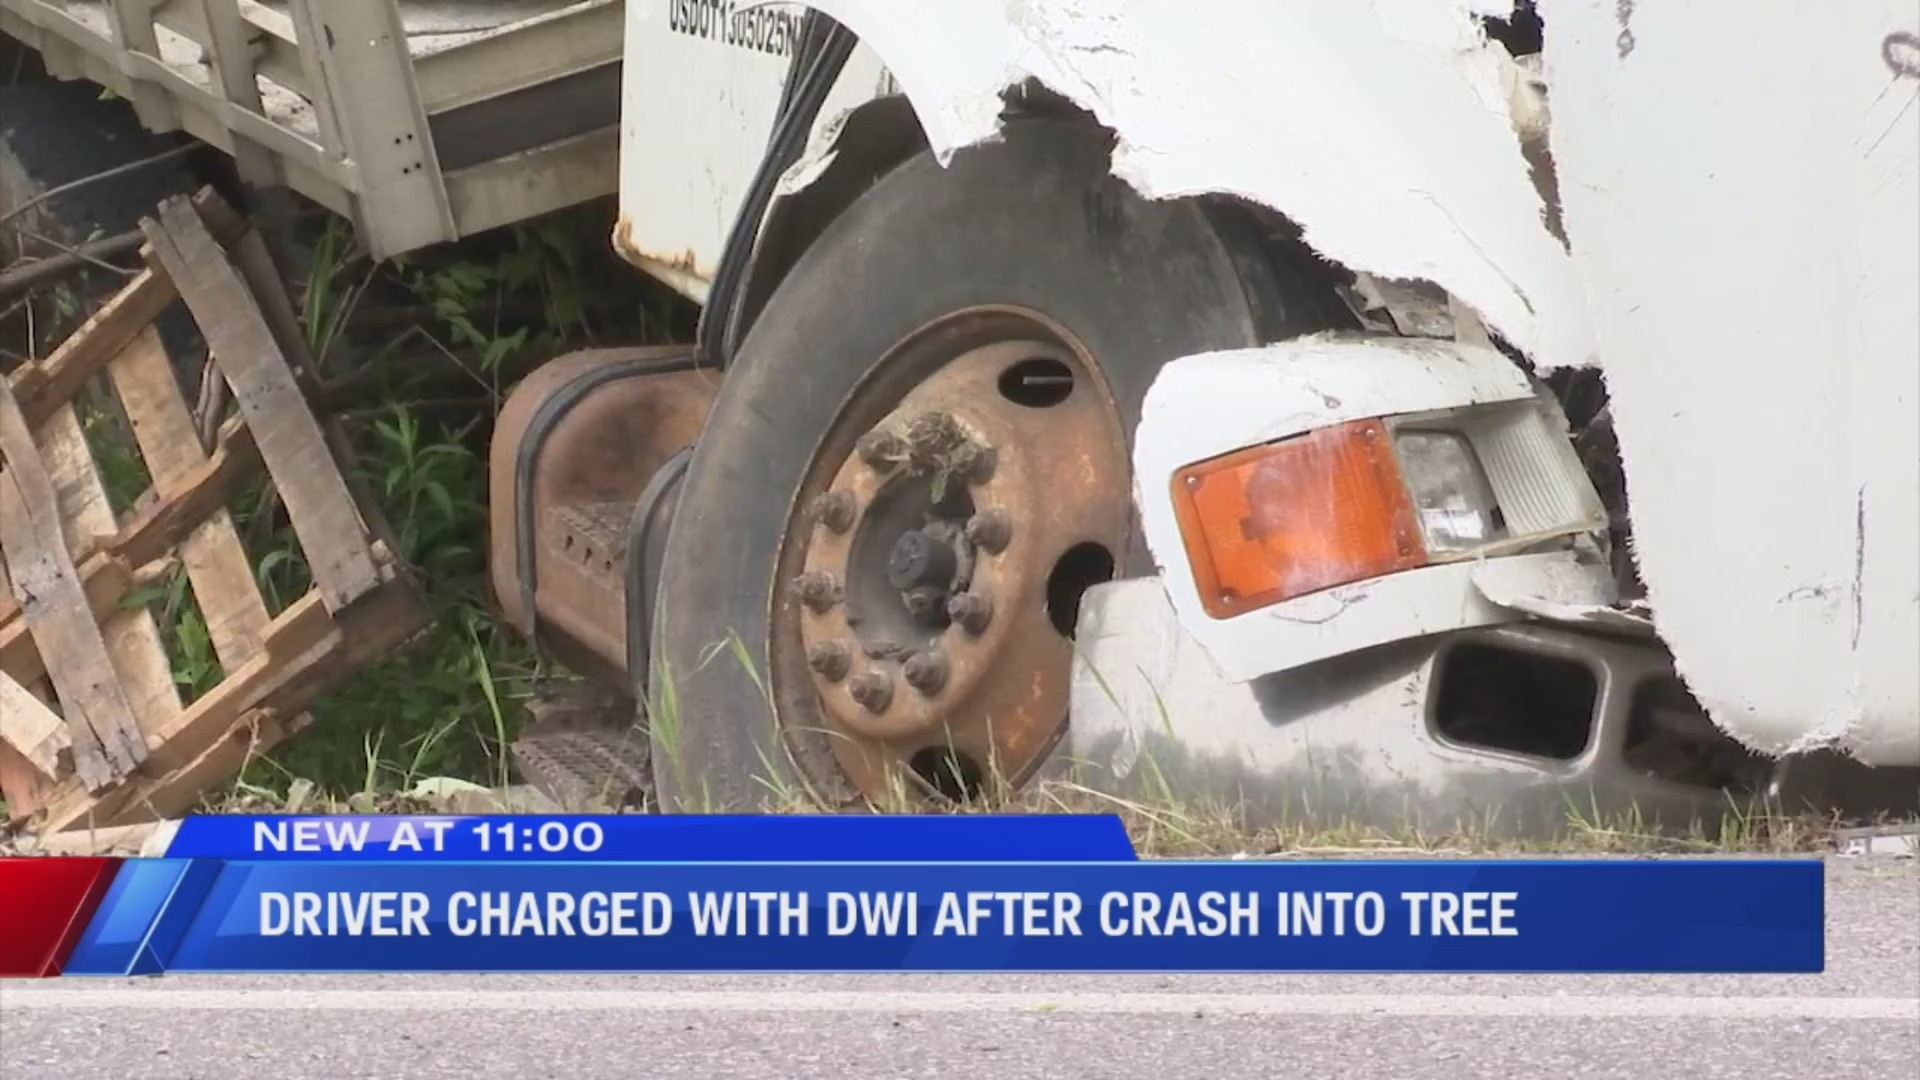 Driver charged with DWI after crashing into a tree